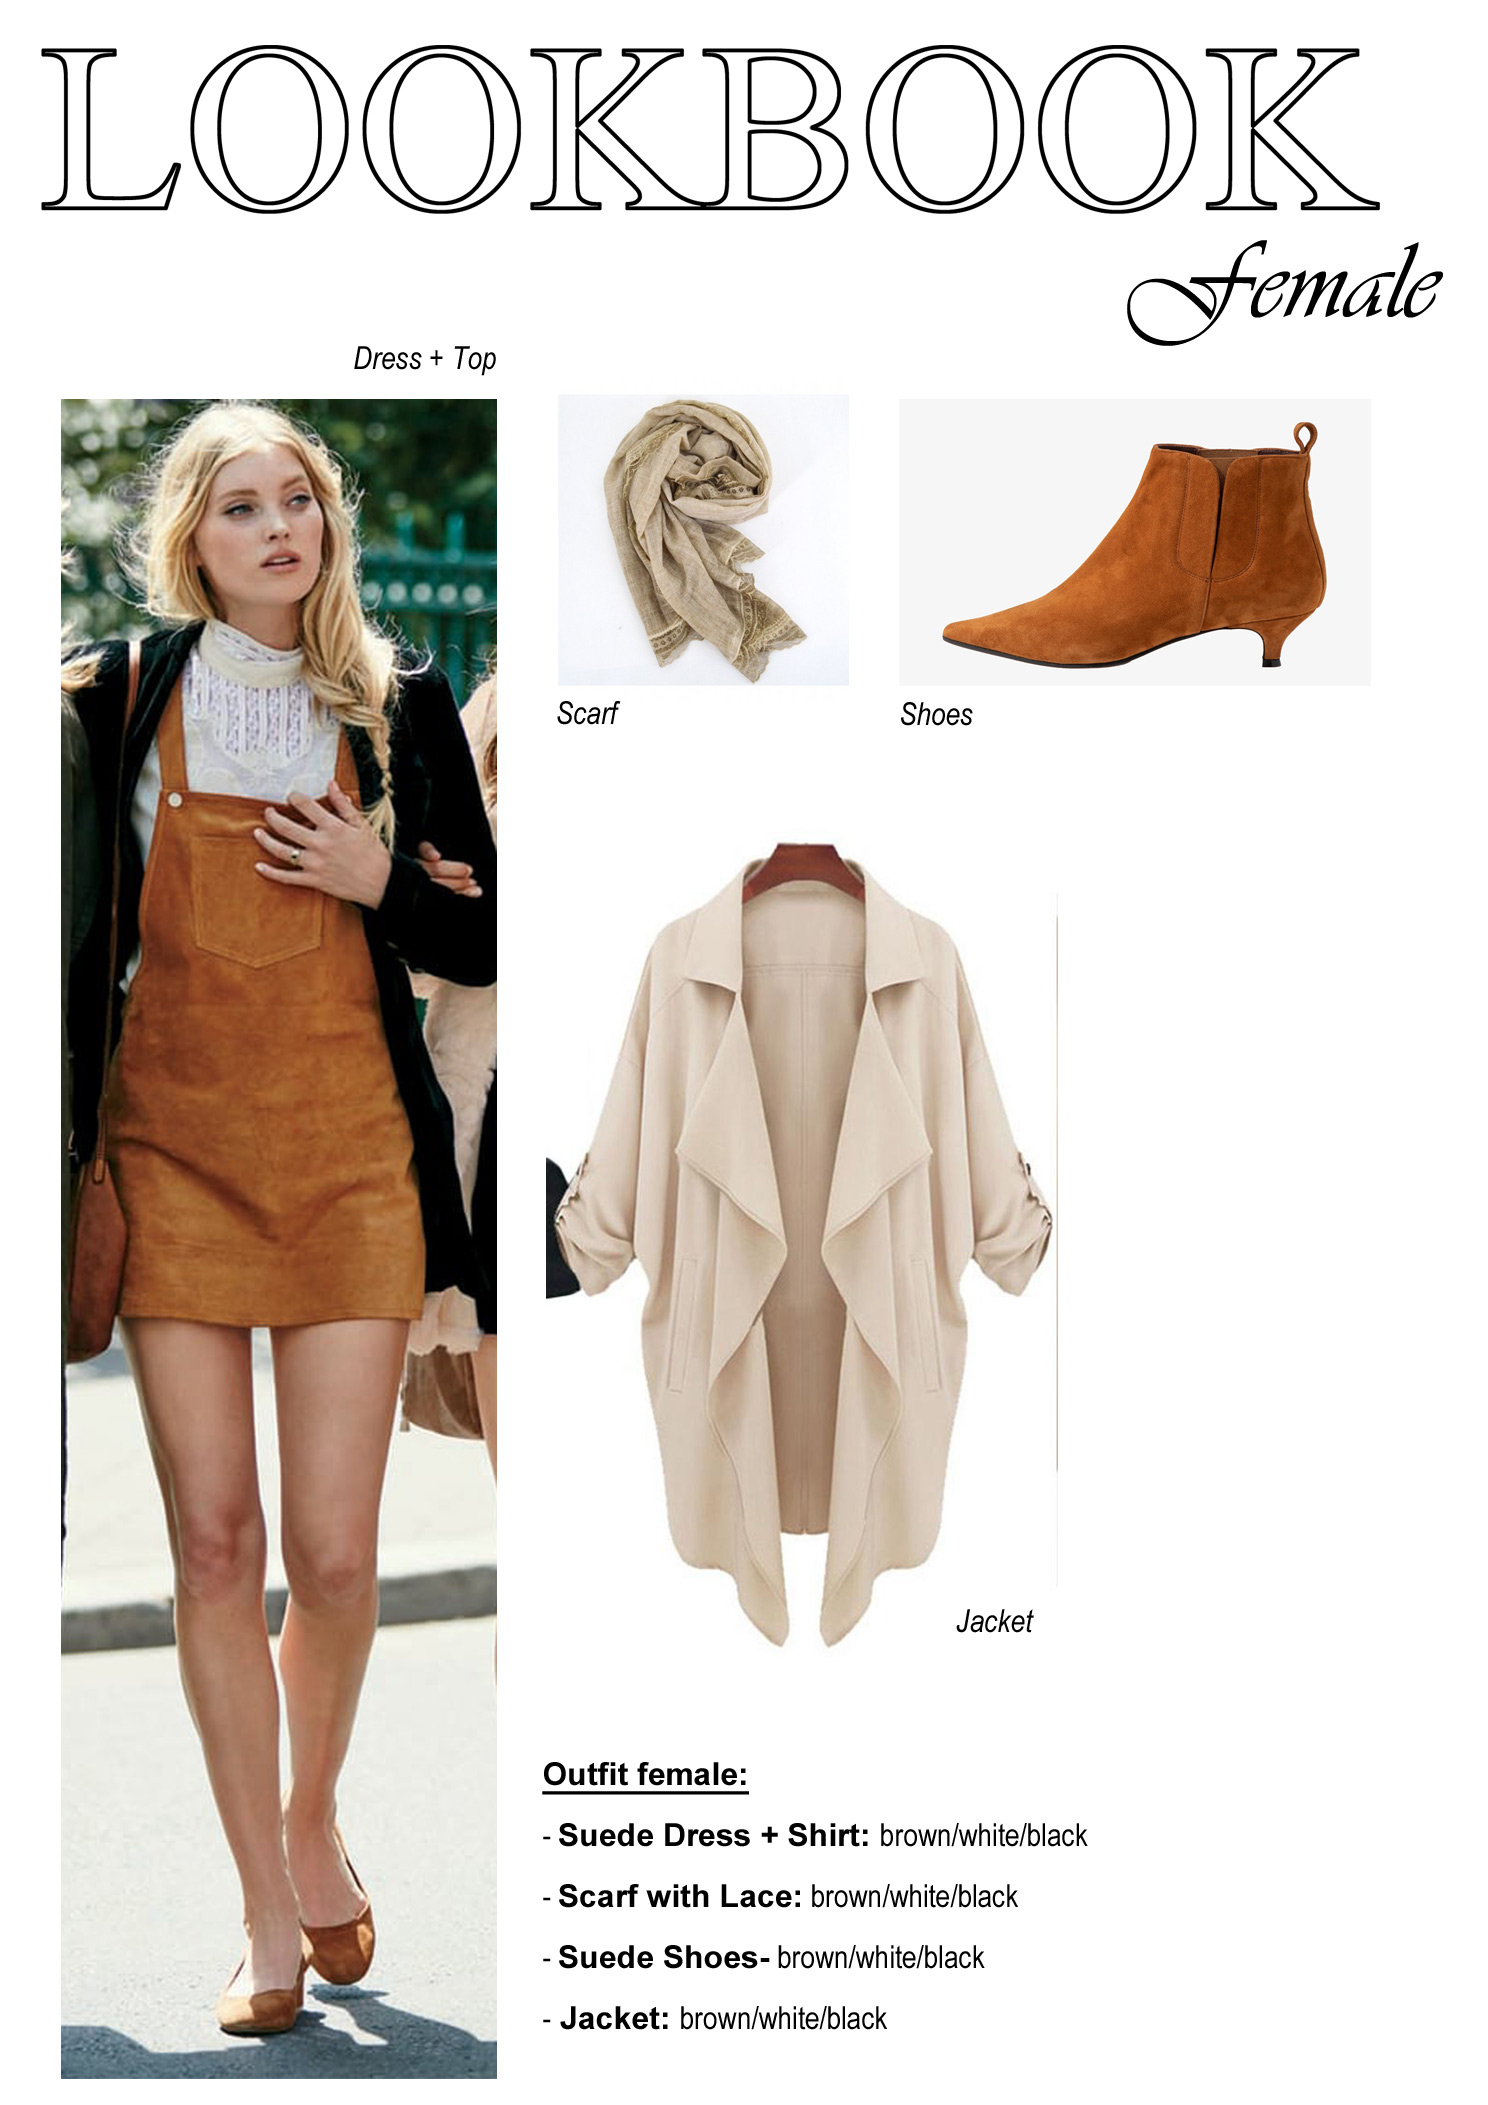 Female Outfit Look Book Example